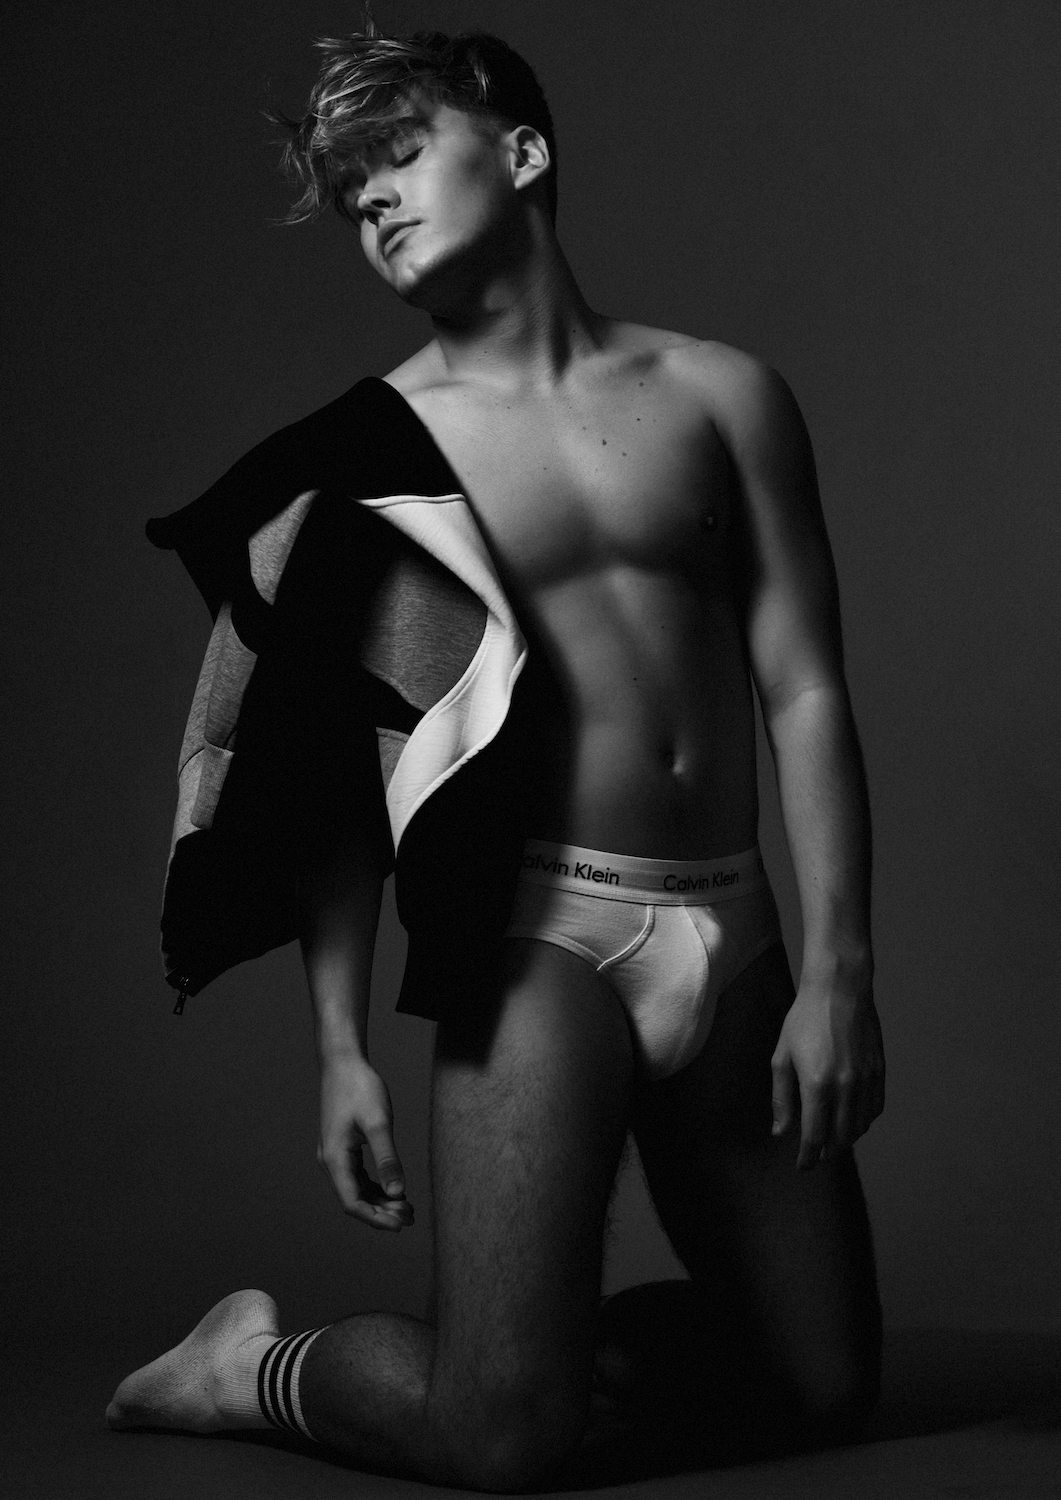 Danny Fogarty by Darren Skene for CAJ